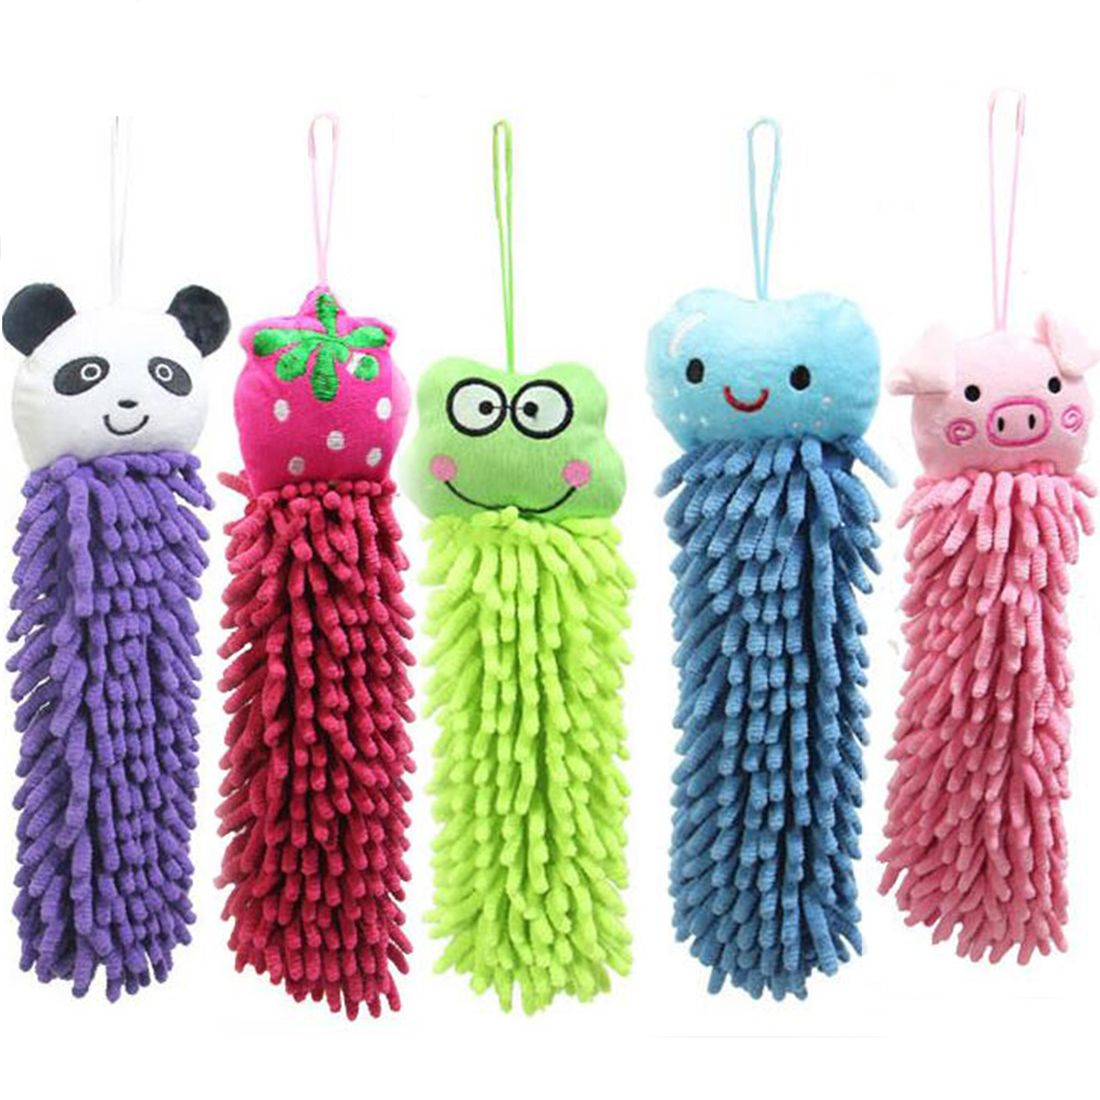 Cute Kitchen Towel Hanging Microfiber Soft Hand Towels Kids Enjoy Clean And  Dry Hands For Kitchen